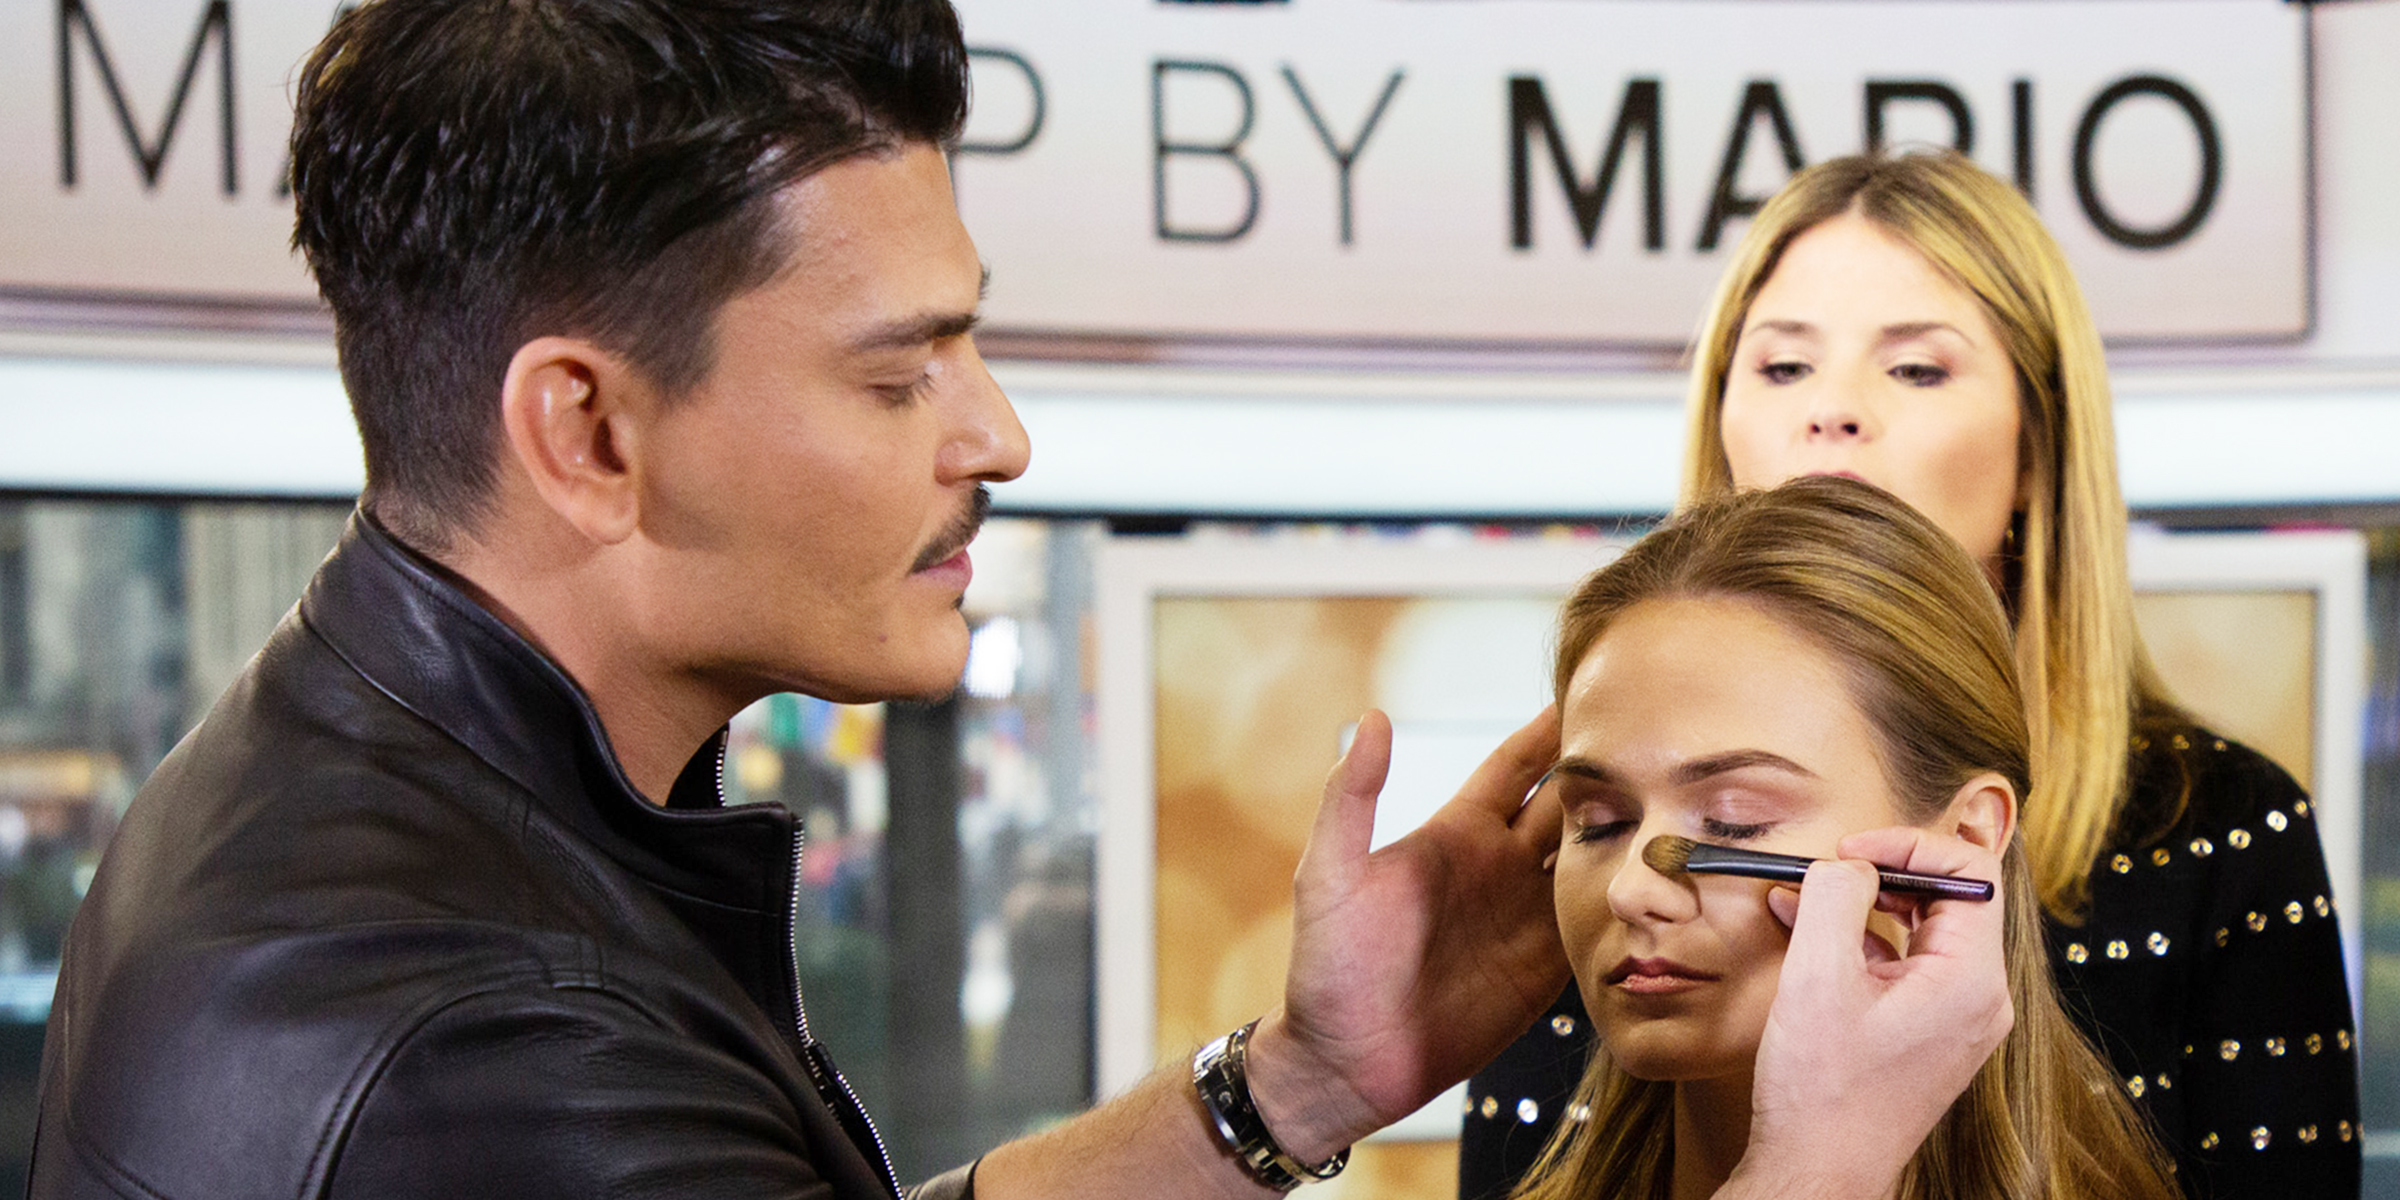 Mario Dedivanovic on his favorite beauty and skin care products